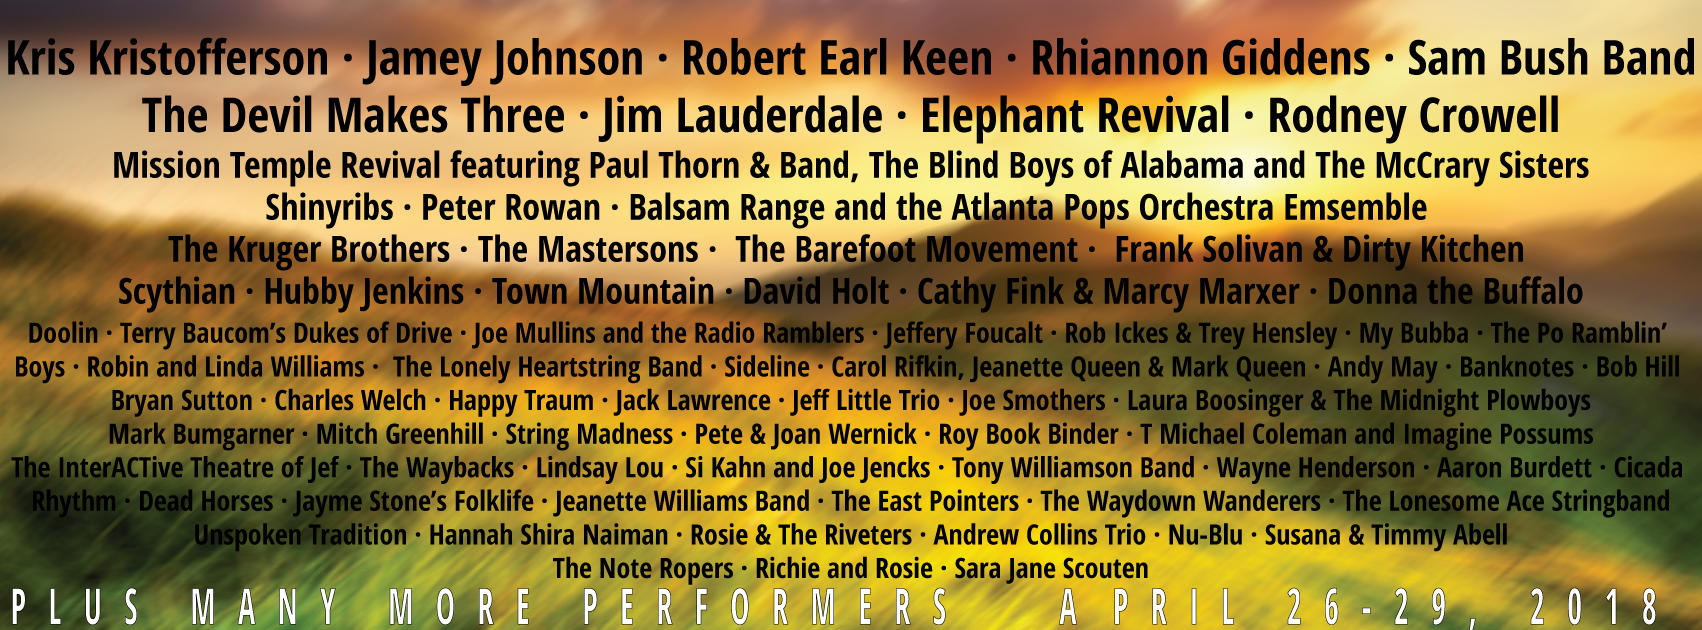 More Artists Added to MerleFest 2018 Lineup